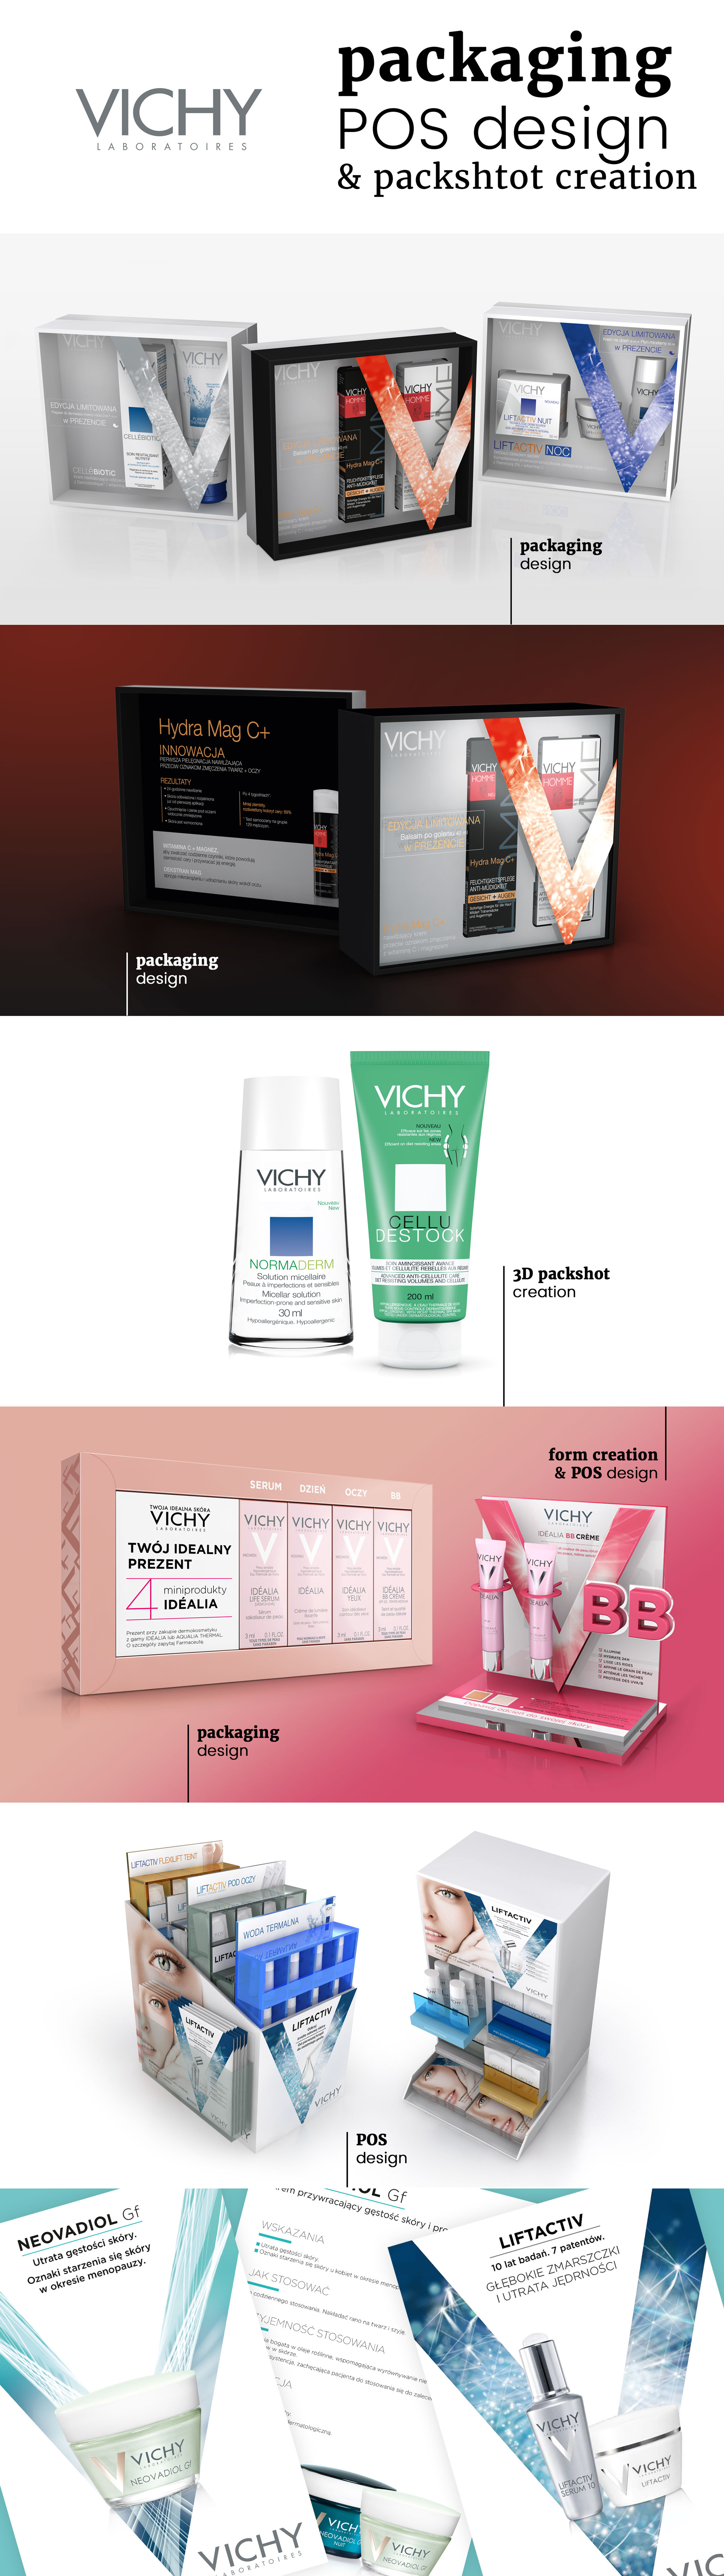 vichy_packaging_packshot_pos